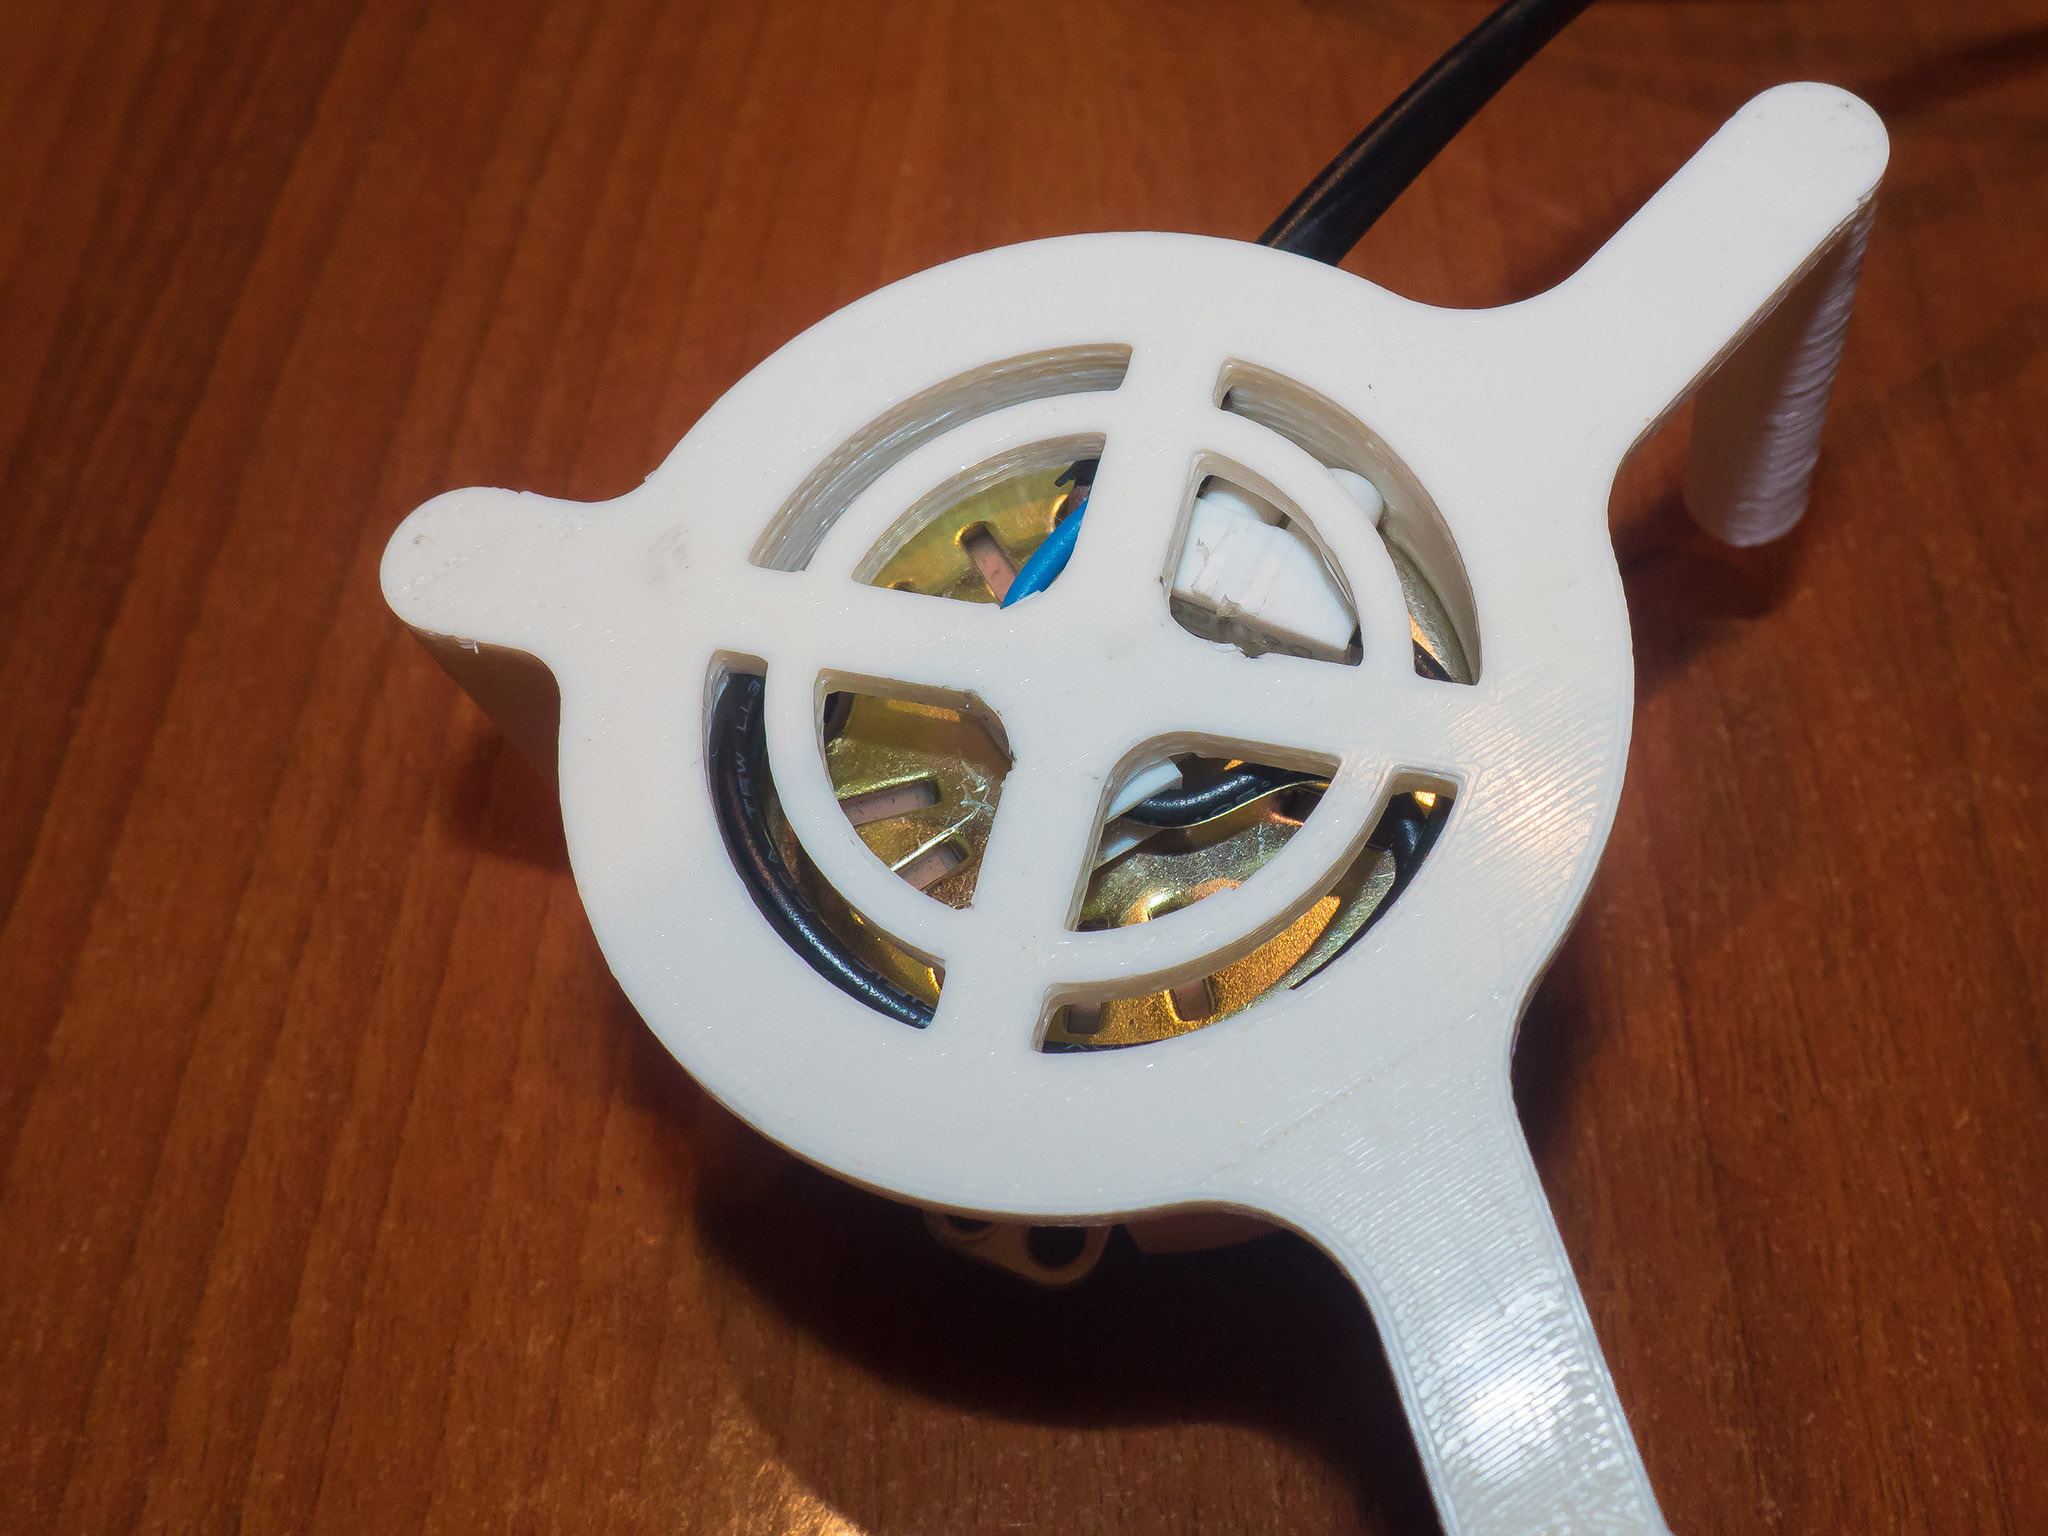 AMF00012-LR_Fin.jpg Download free STL file Motorized TurnTable with microwave motor • 3D printer object, dancingchicken